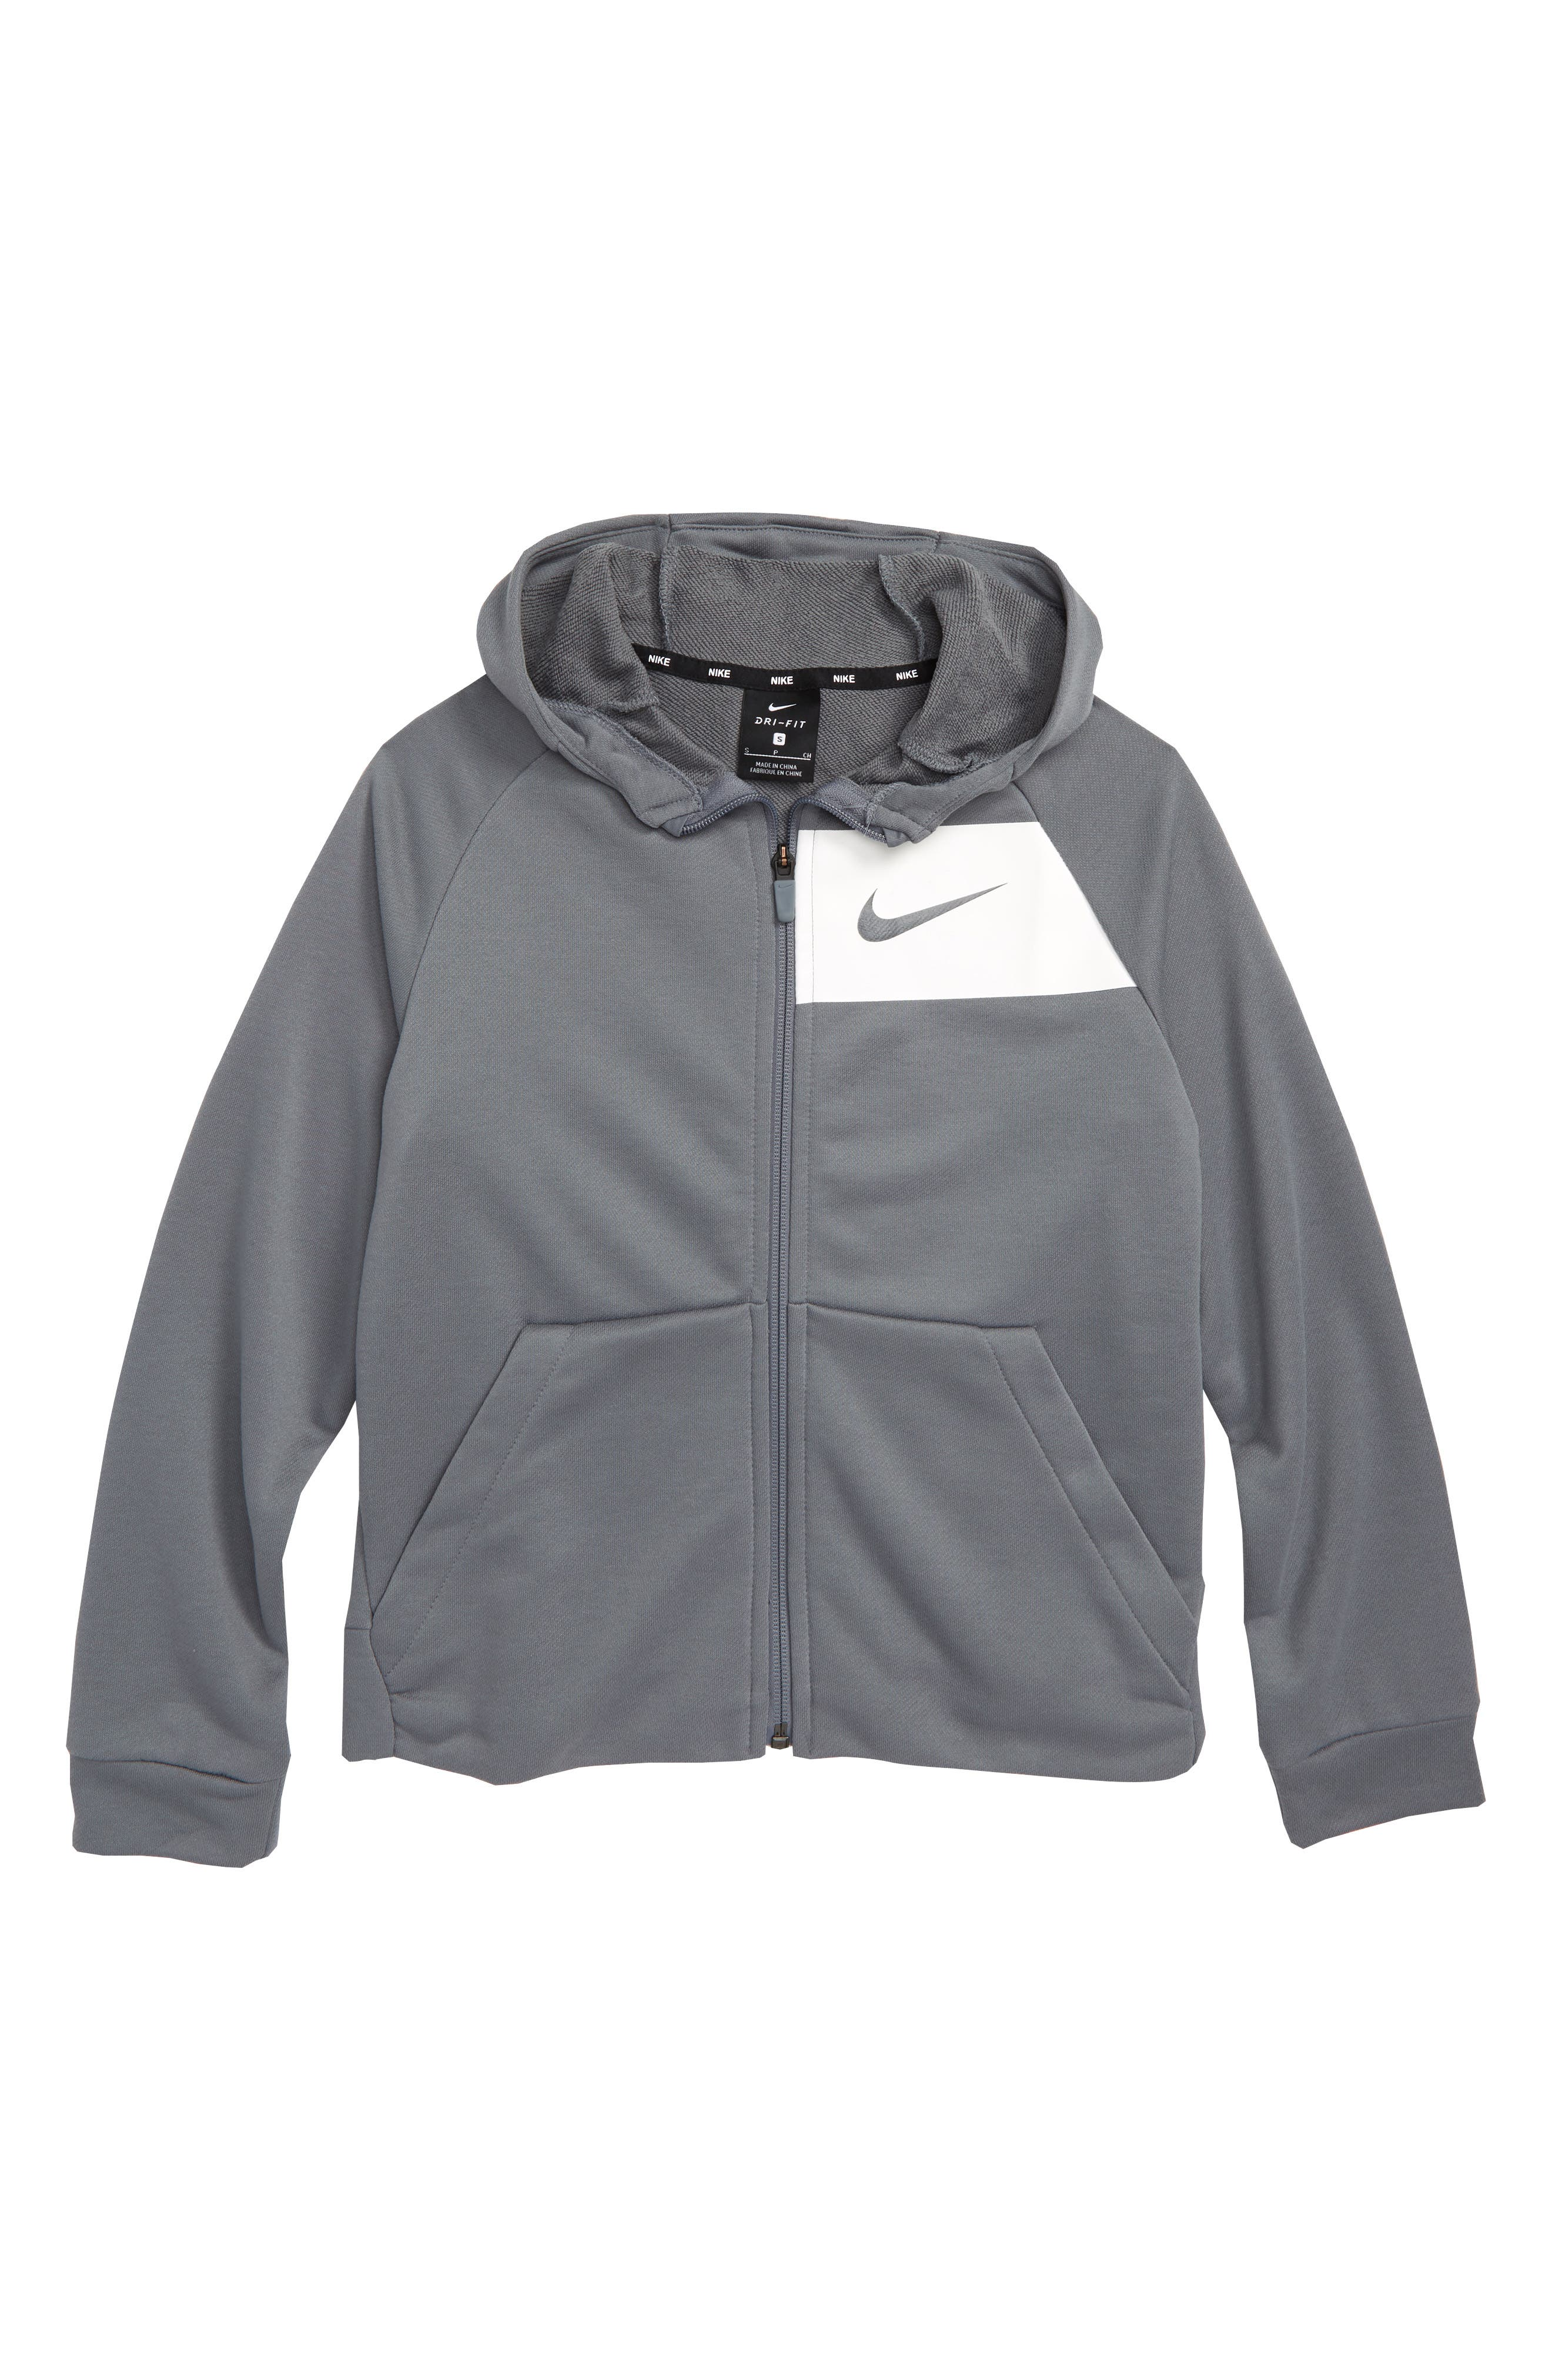 Dry Full Zip Hoodie,                             Main thumbnail 1, color,                             COOL GREY/ WHITE